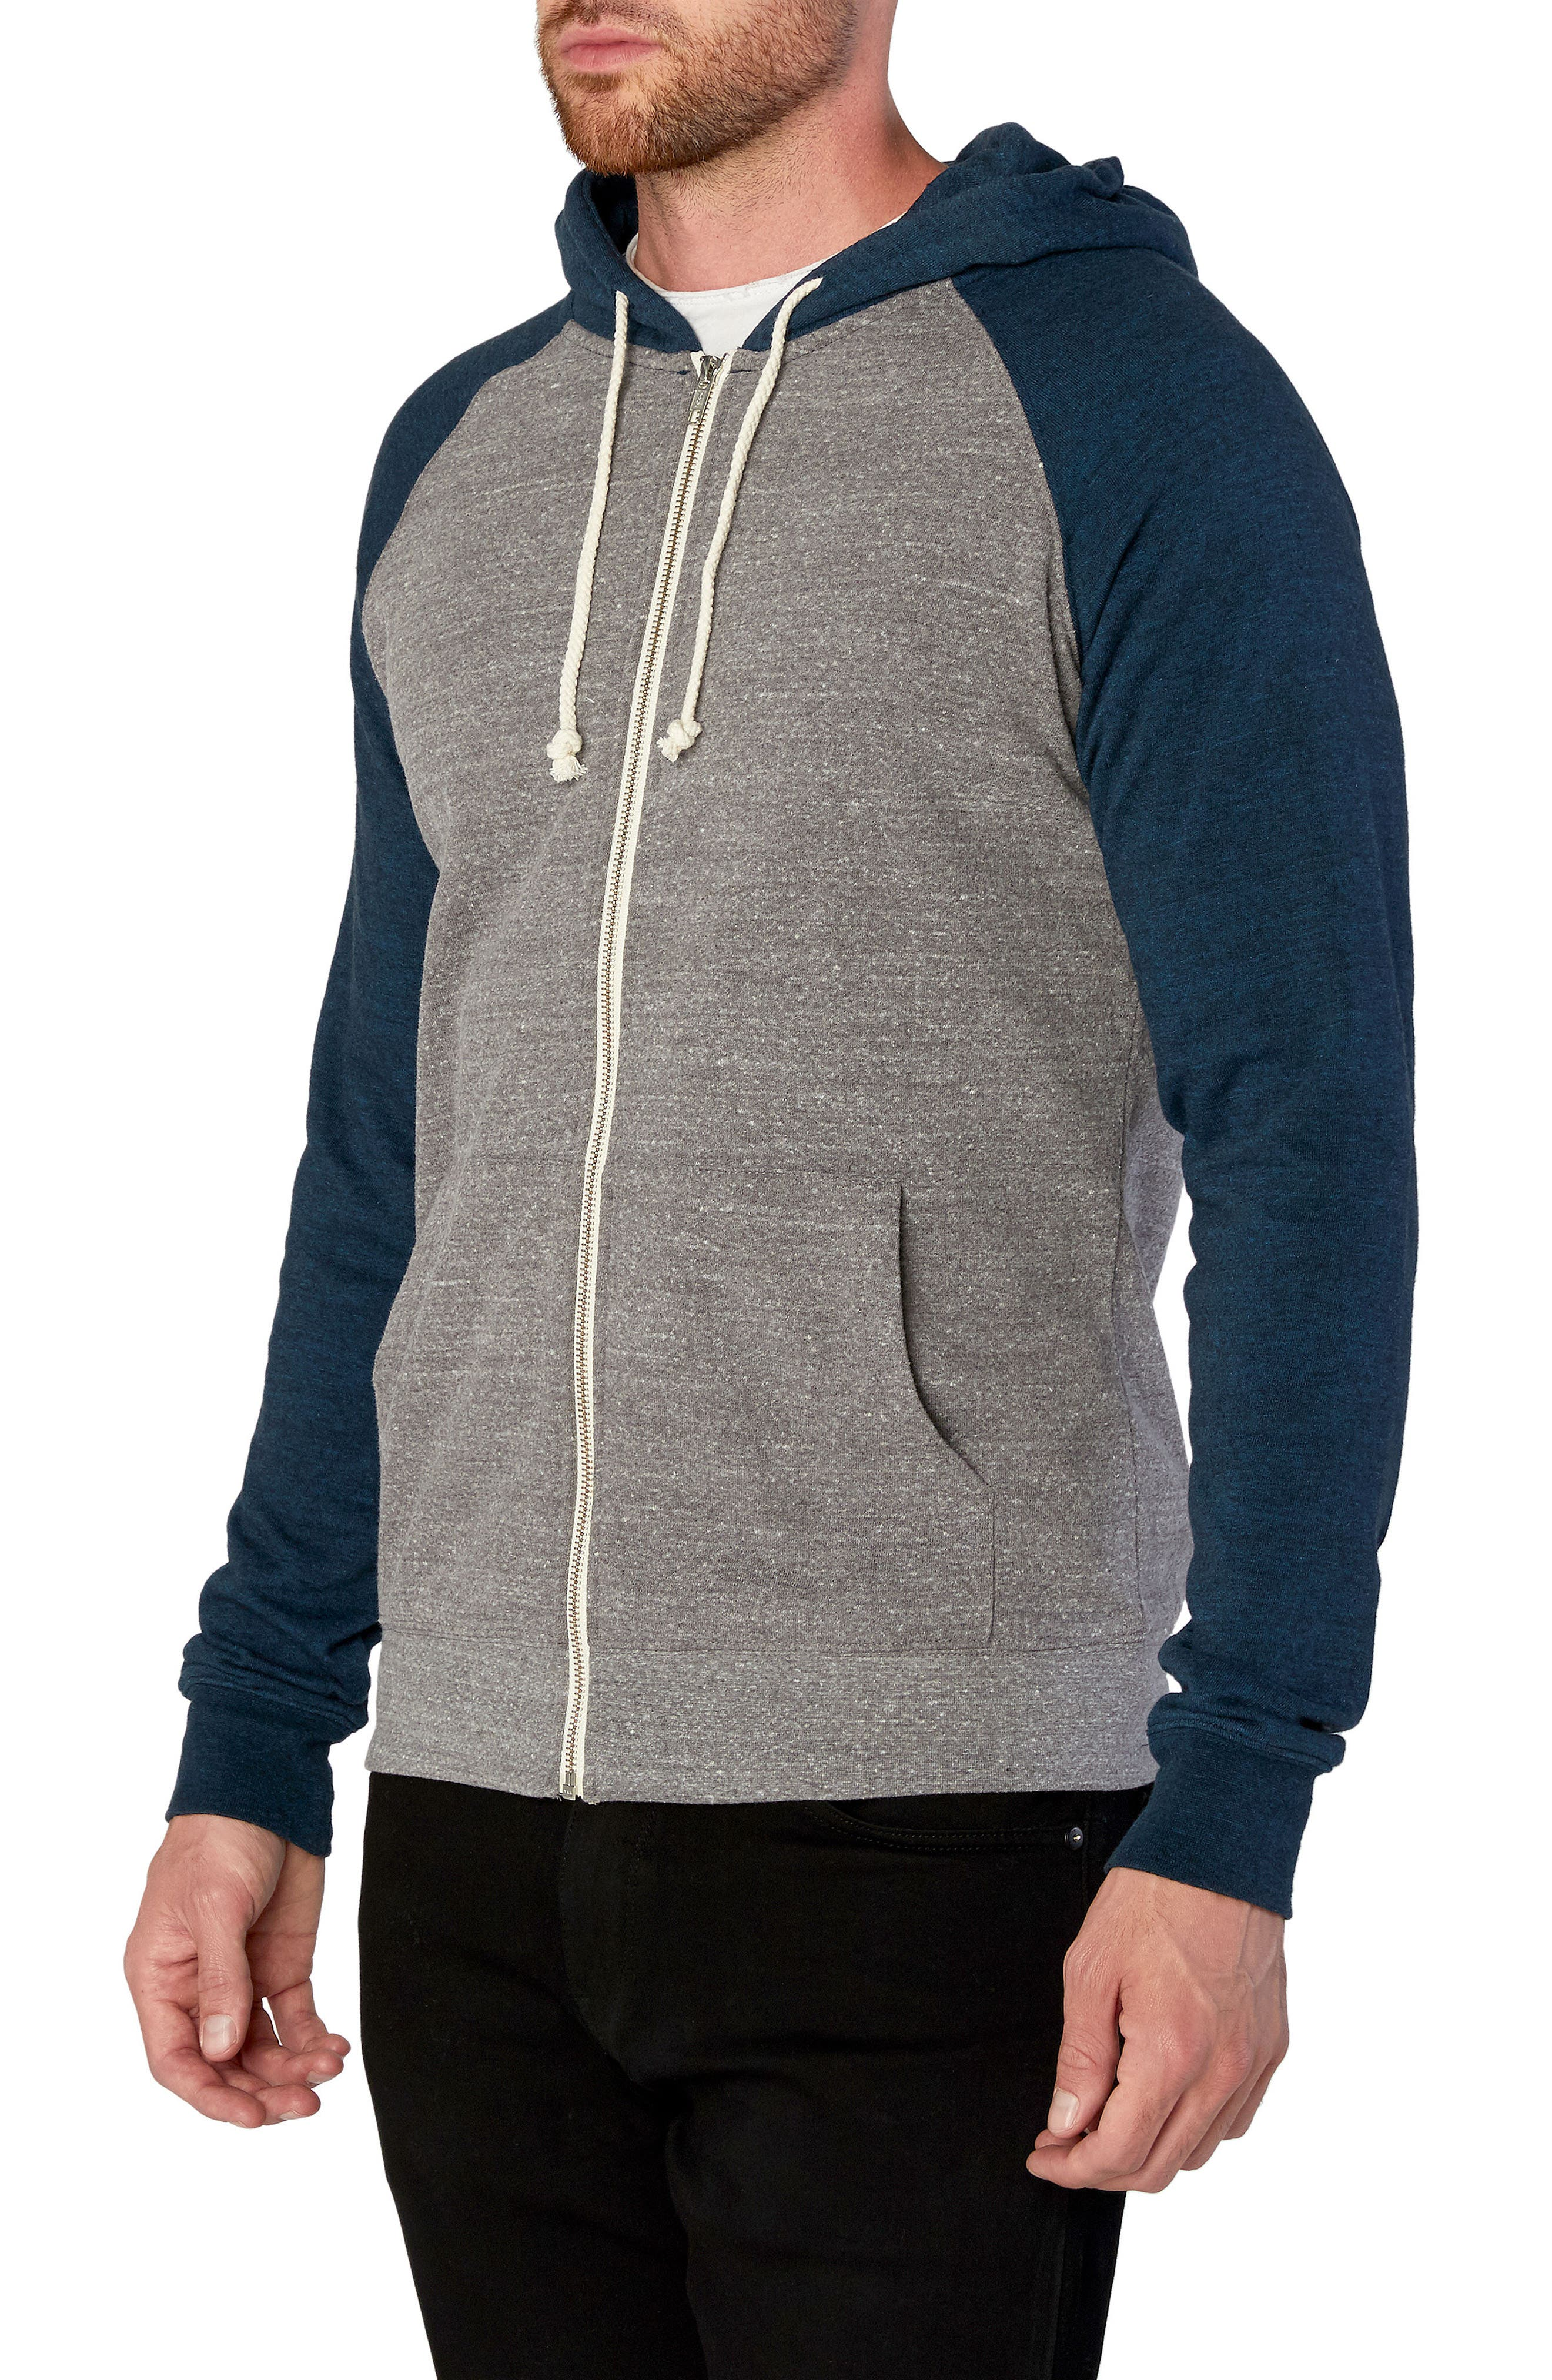 Threads for Thought Raglan Hoodie,                             Alternate thumbnail 3, color,                             Heather Grey/ Midnight